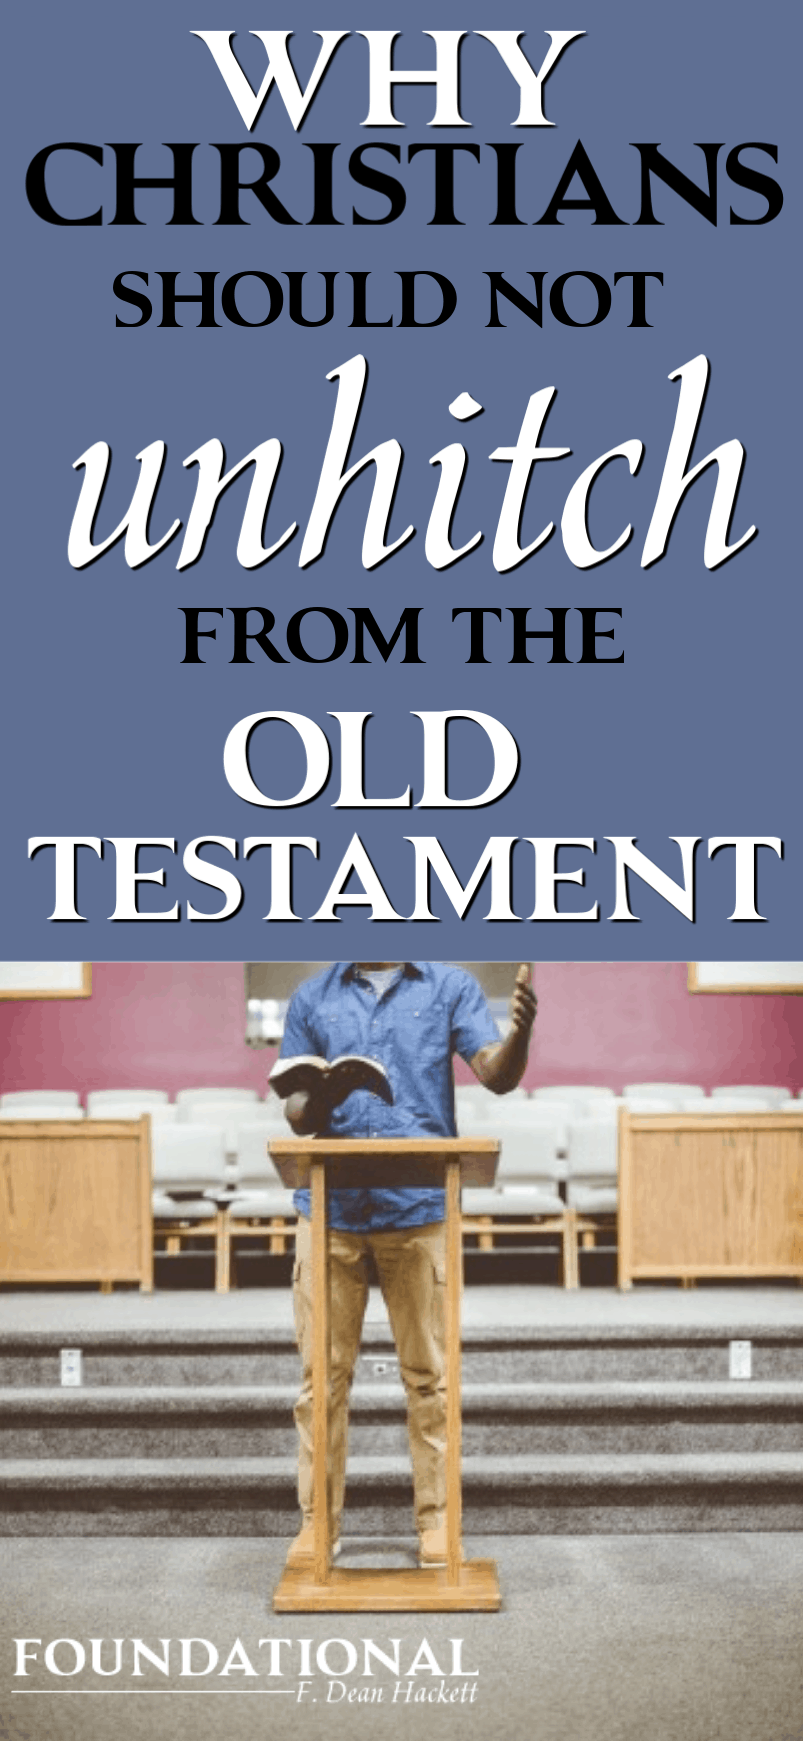 Andy Stanely says that our faith needs to unhitch from the Old Testament. But what happens when we do this? Here is why this is dangerous for the church. #foundational #andystanley #OldTestament #distortion #church